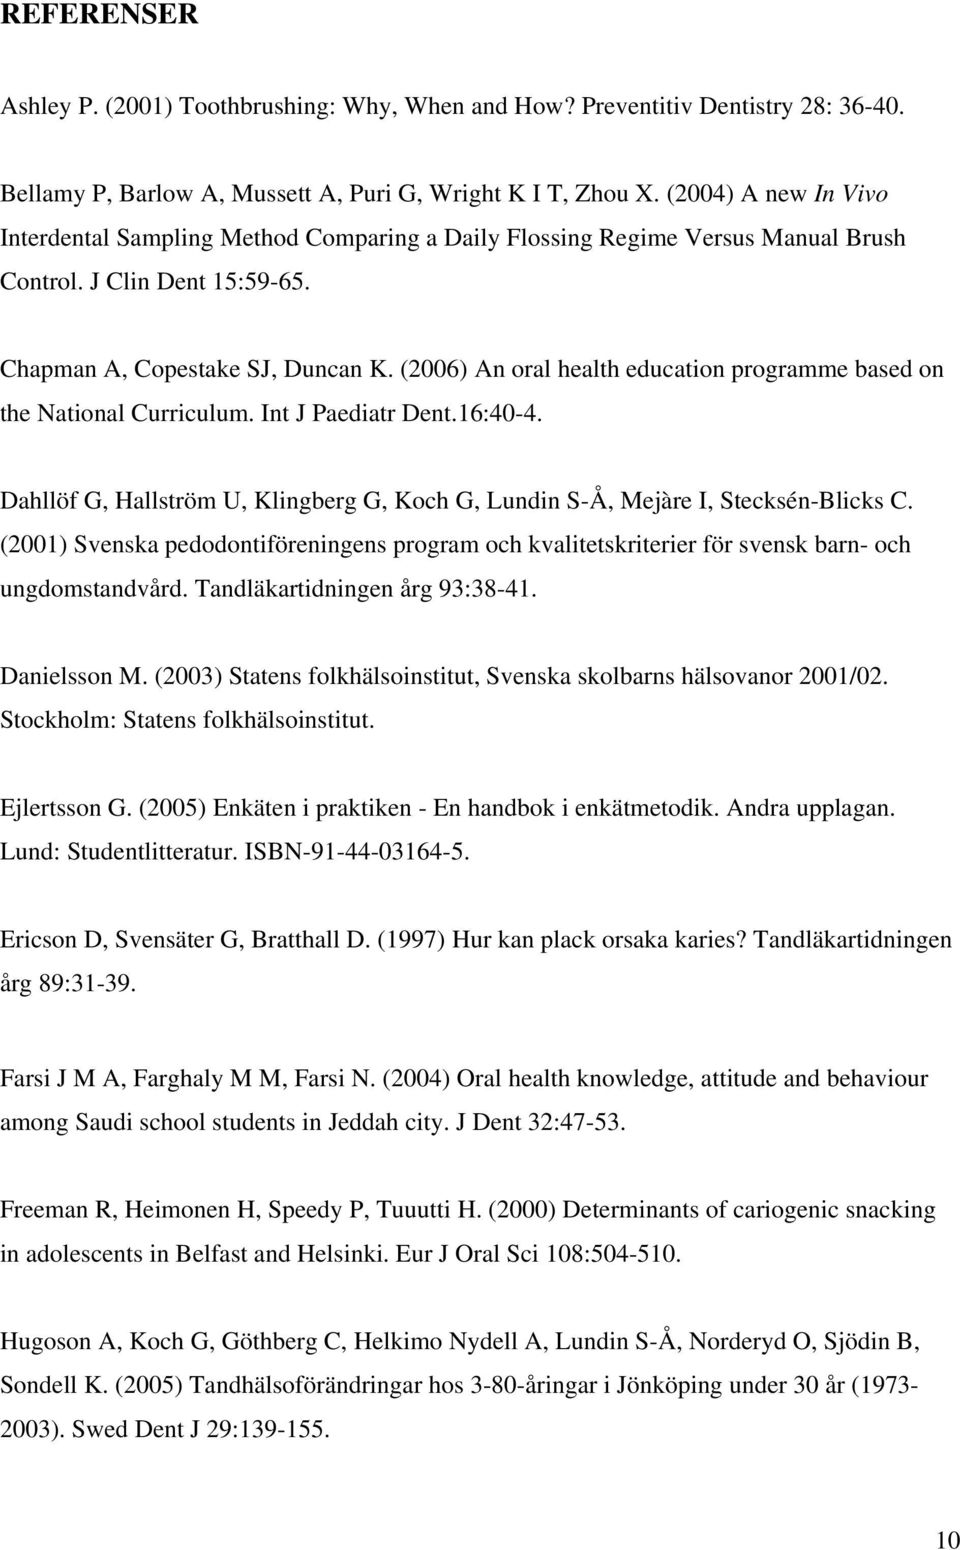 (2006) An oral health education programme based on the National Curriculum. Int J Paediatr Dent.16:40-4. Dahllöf G, Hallström U, Klingberg G, Koch G, Lundin S-Å, Mejàre I, Stecksén-Blicks C.